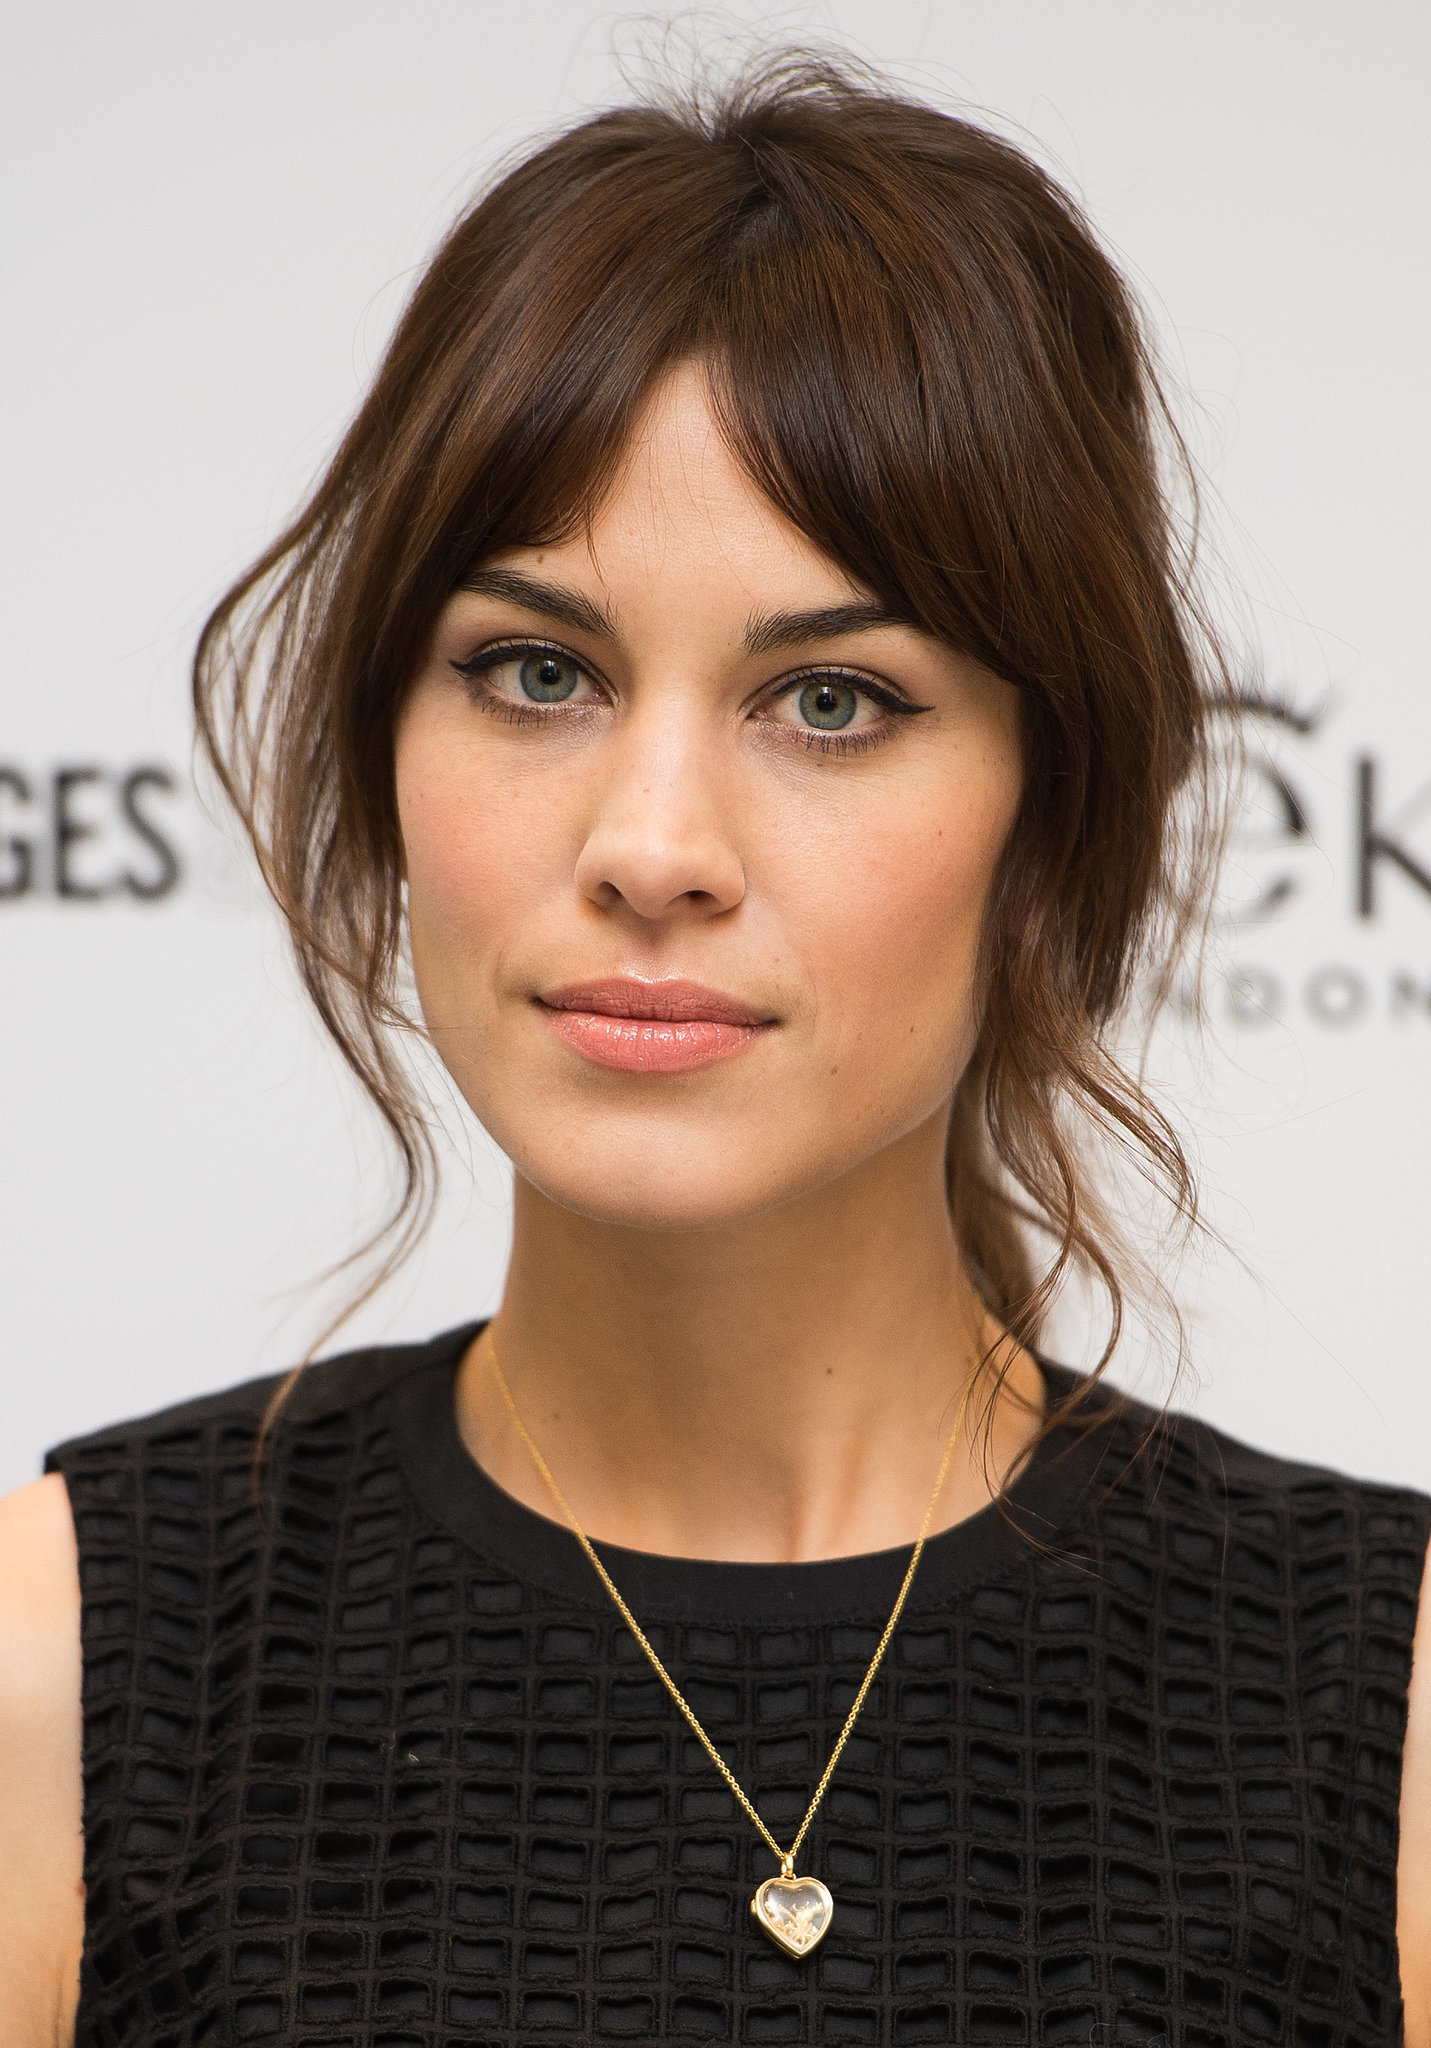 Hairstyles For Long Hair Growing Out Bangs : Your Ultimate Guide to How to Grow Out Bangs Gracefully